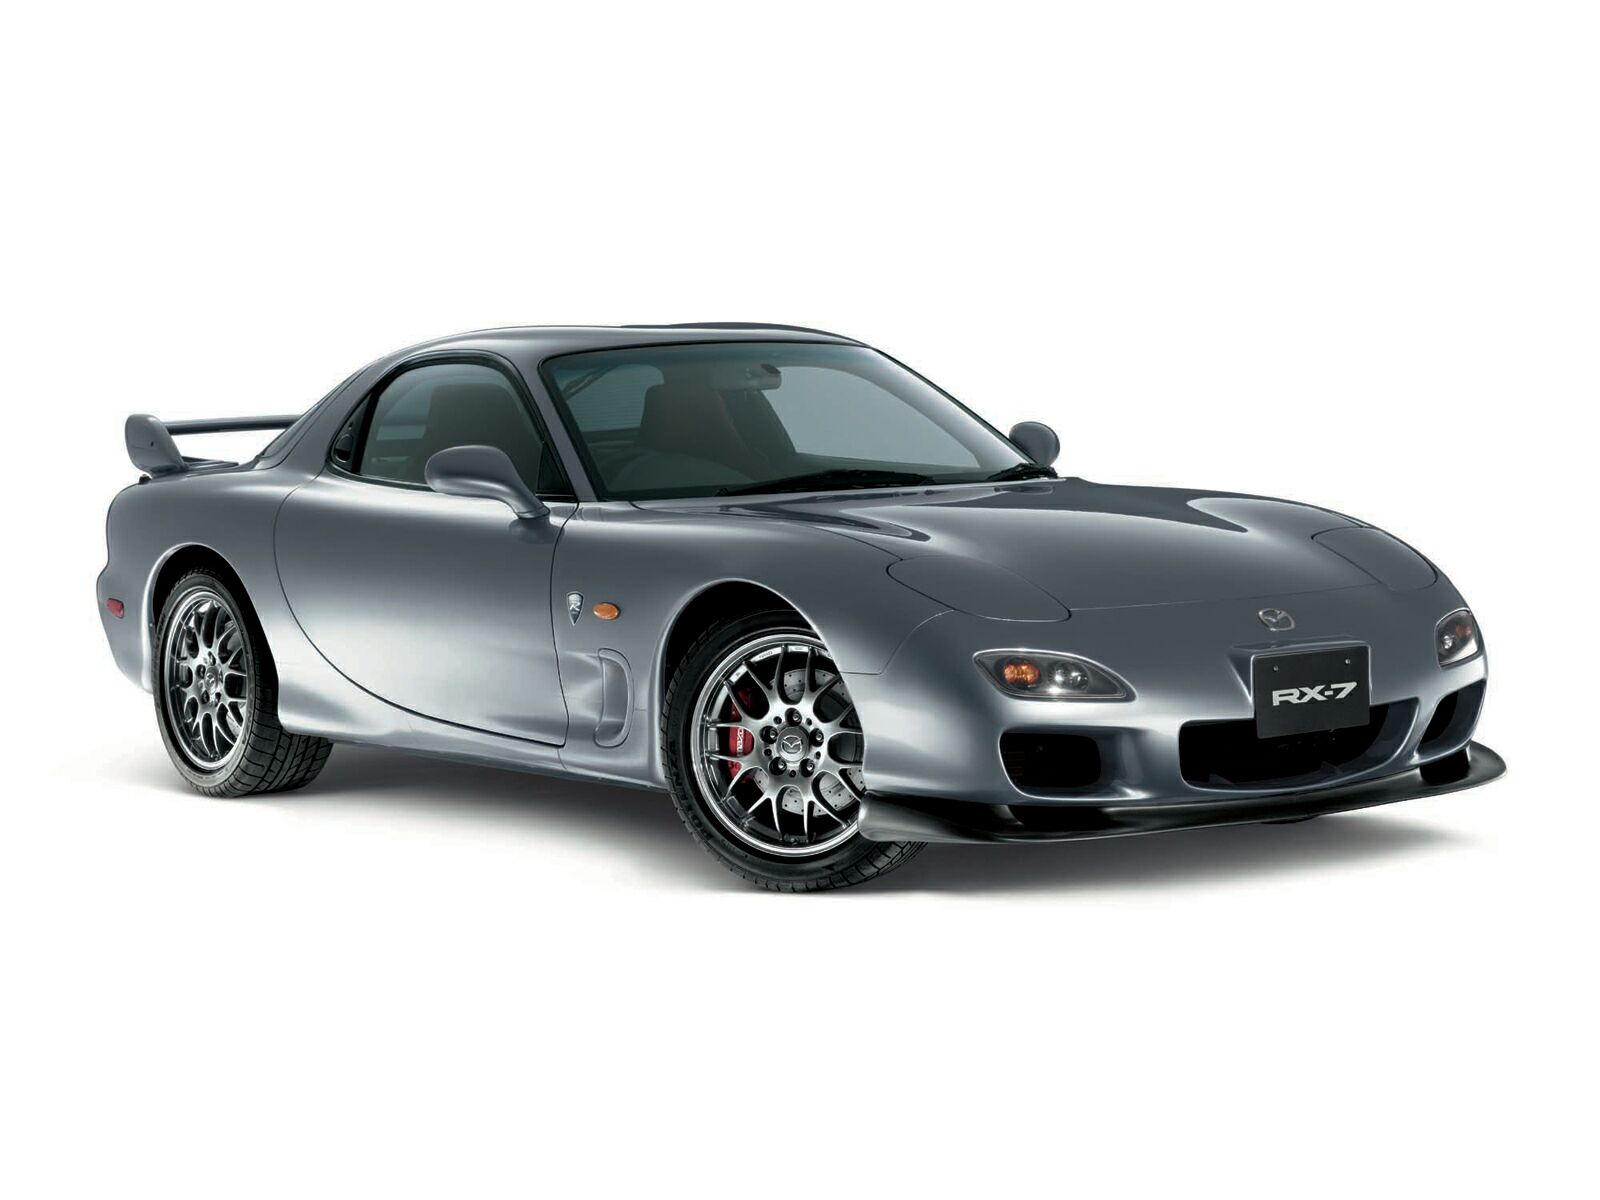 2002 Mazda RX-7 Version 6 Spirit R Type A/B/C